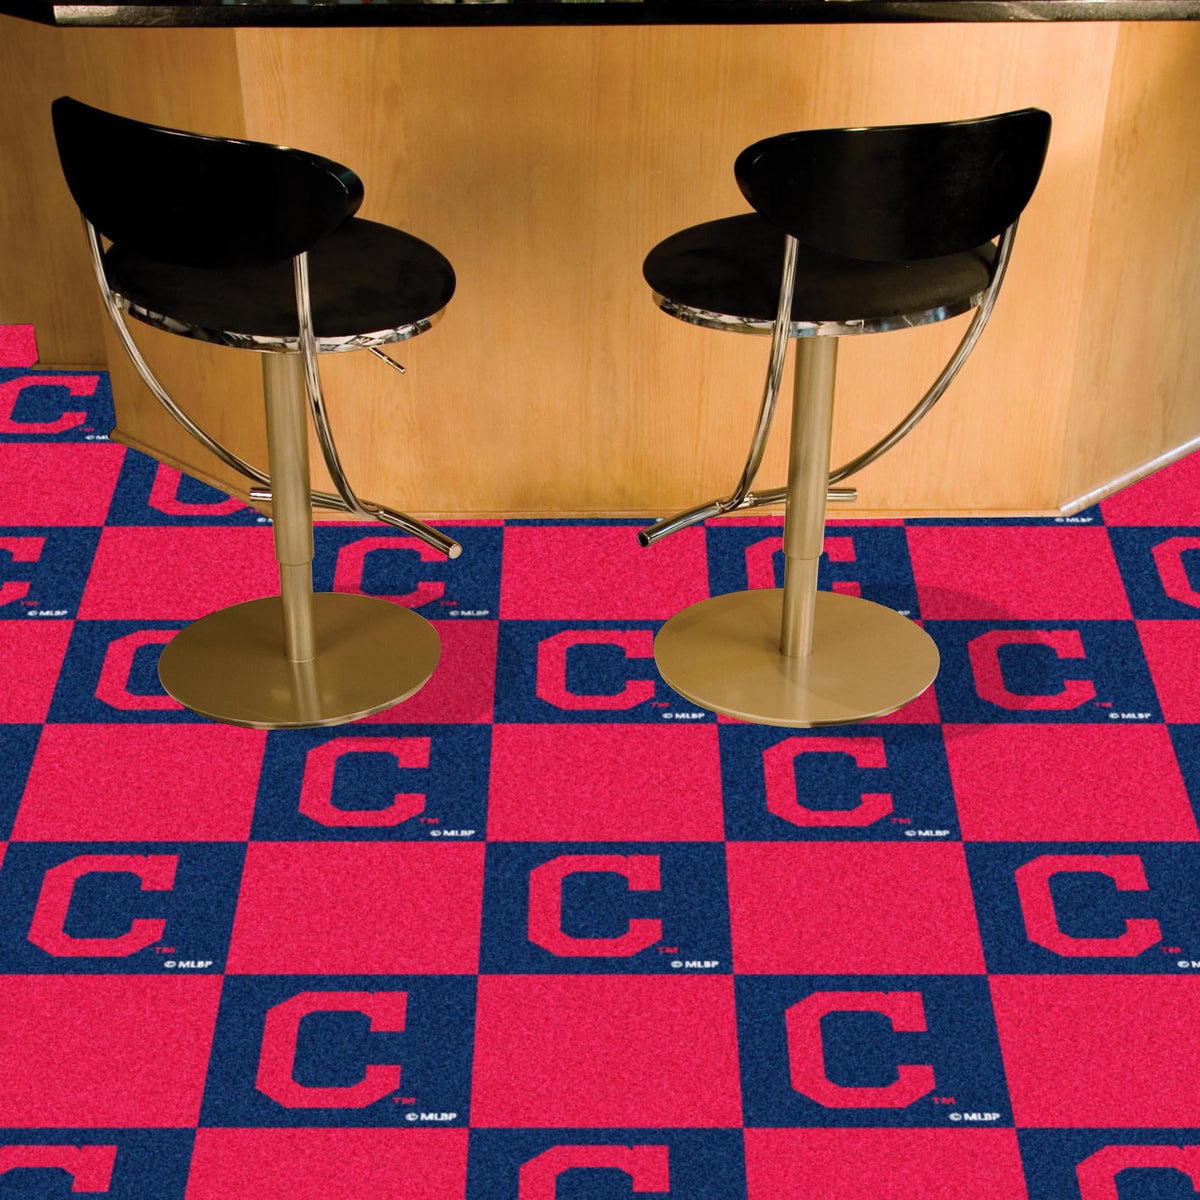 MLB - Team Carpet Tiles MLB Mats, Carpet Tile Flooring, Team Carpet Tiles, MLB, Home Fan Mats Cleveland Indians